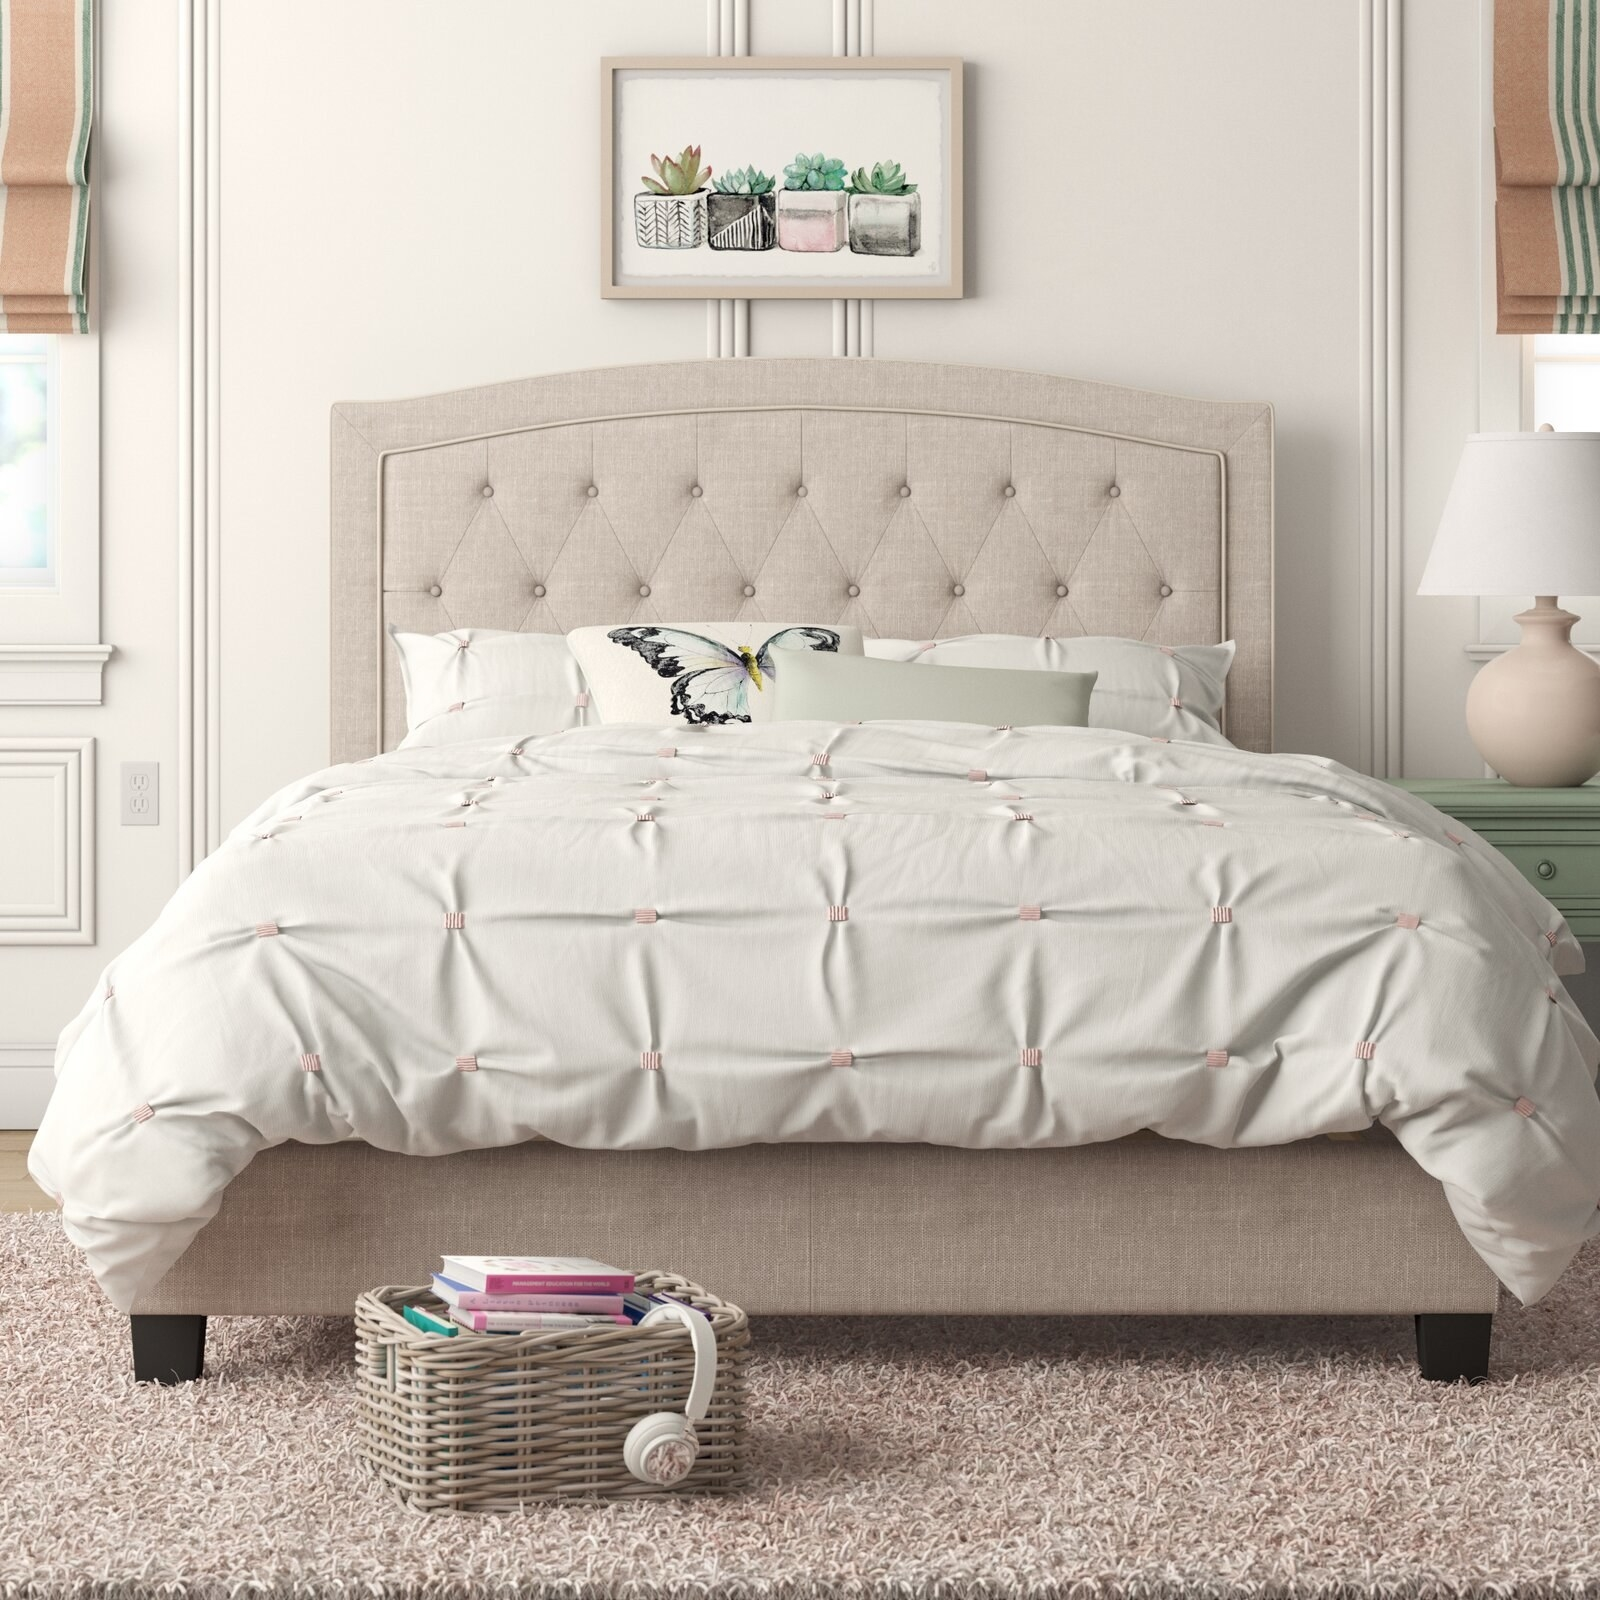 The cream colored linen bed with a tufted headboard